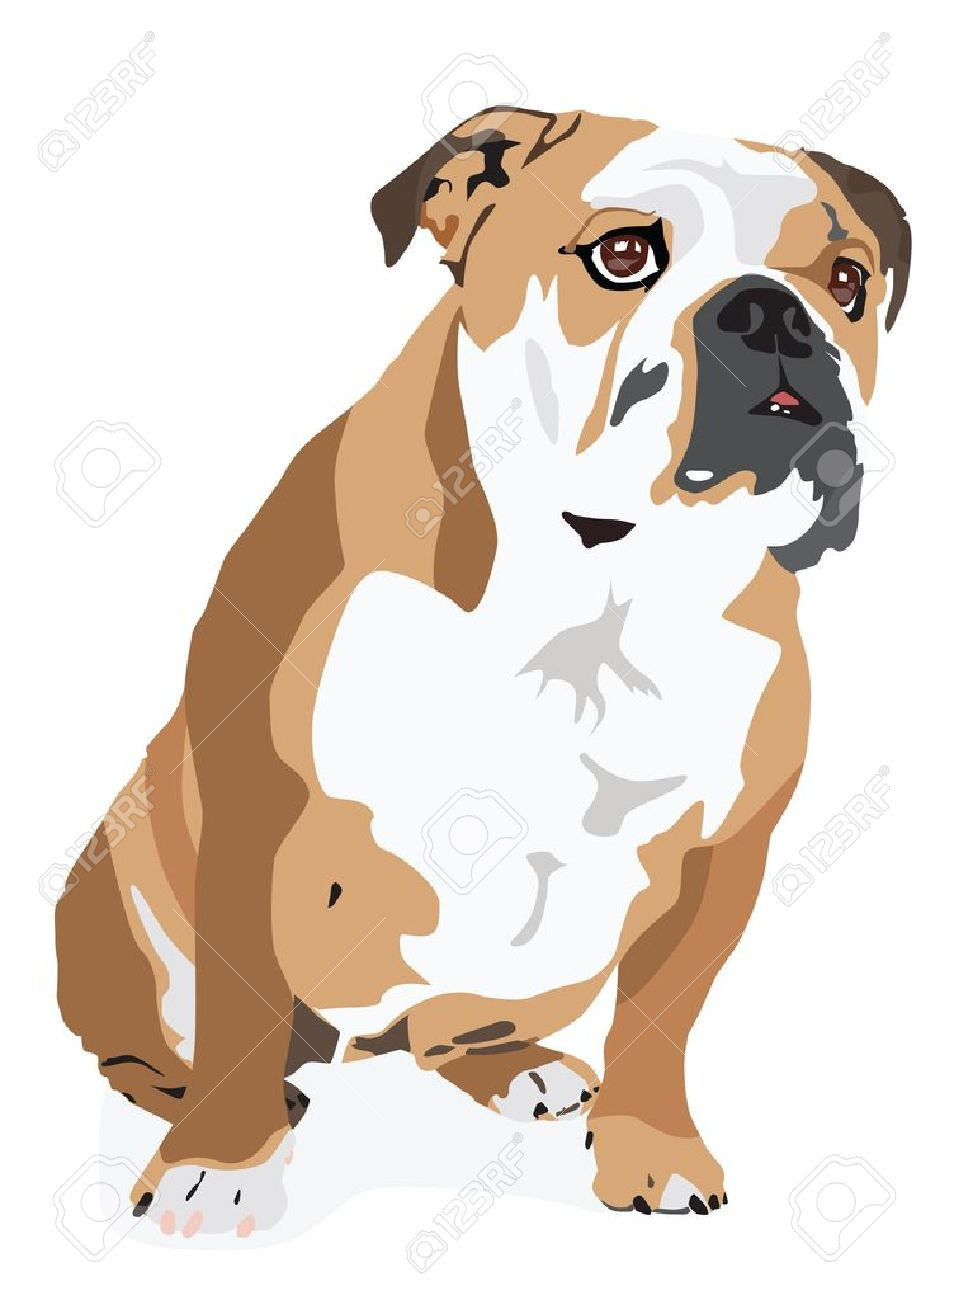 English Bulldog clipart #6, Download drawings